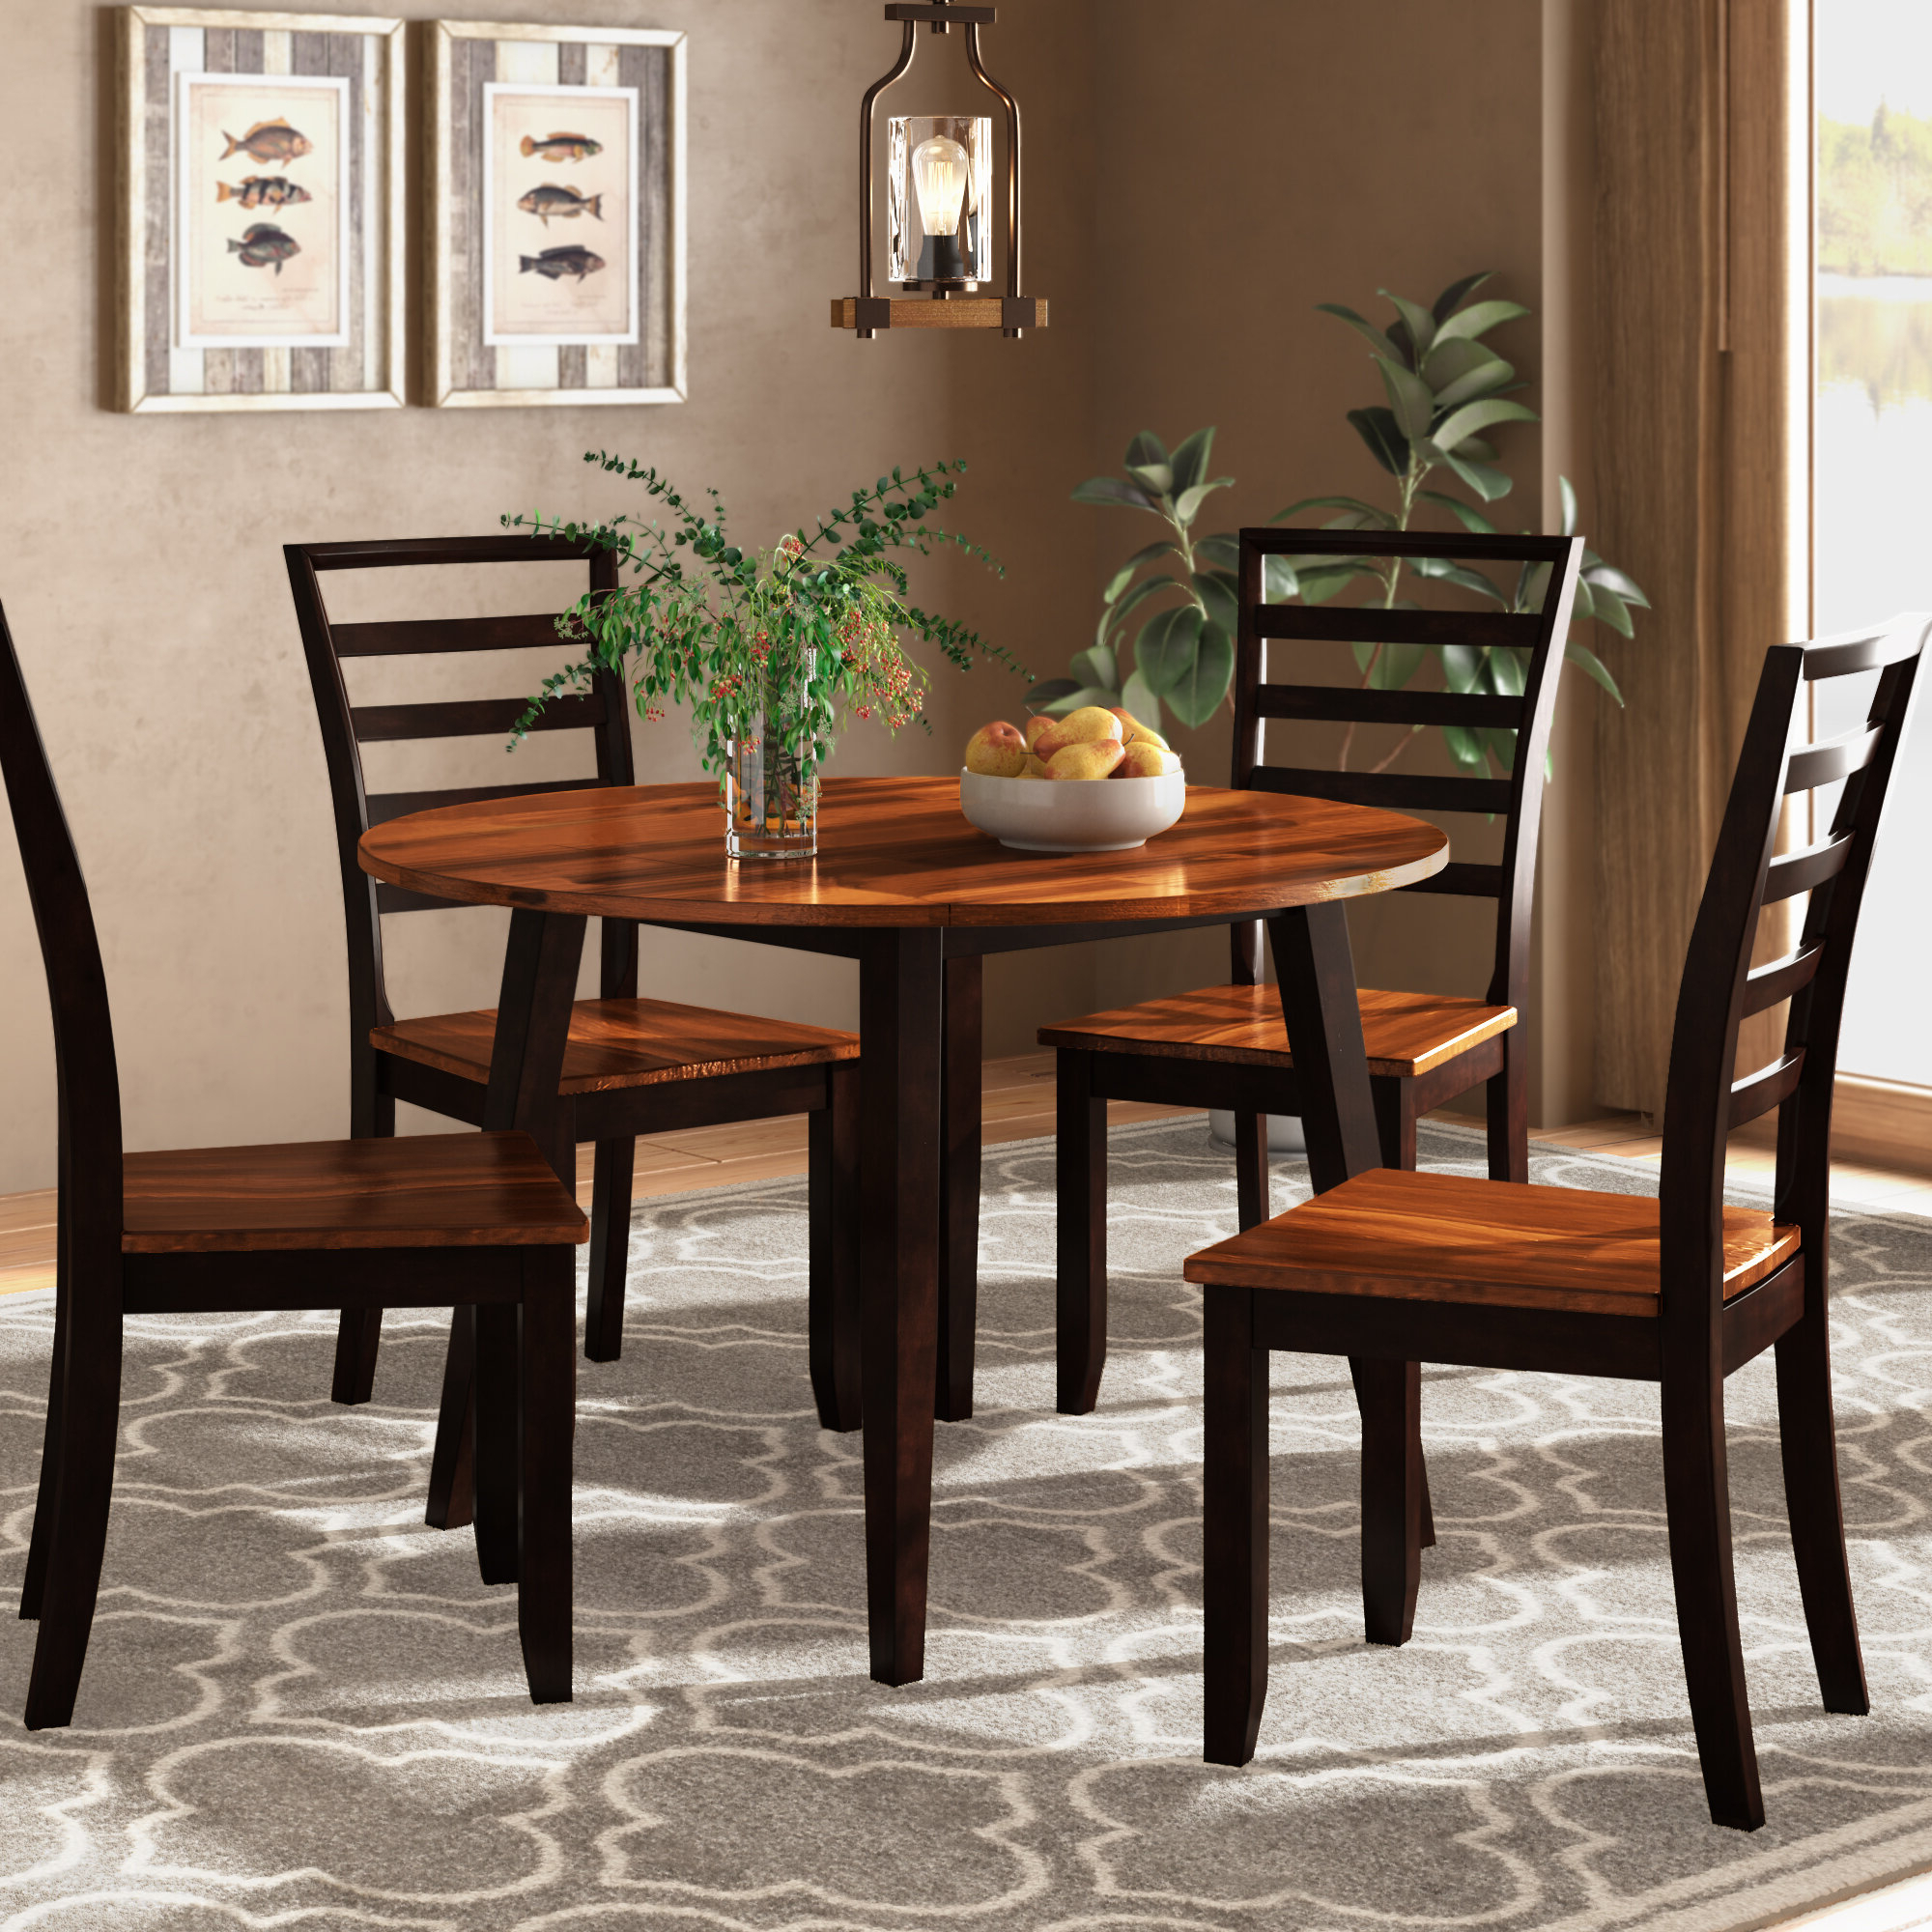 Well Known 5 Piece Breakfast Nook Dining Sets Within Millwood Pines Hidalgo 5 Piece Drop Leaf Solid Wood Breakfast Nook (View 22 of 25)